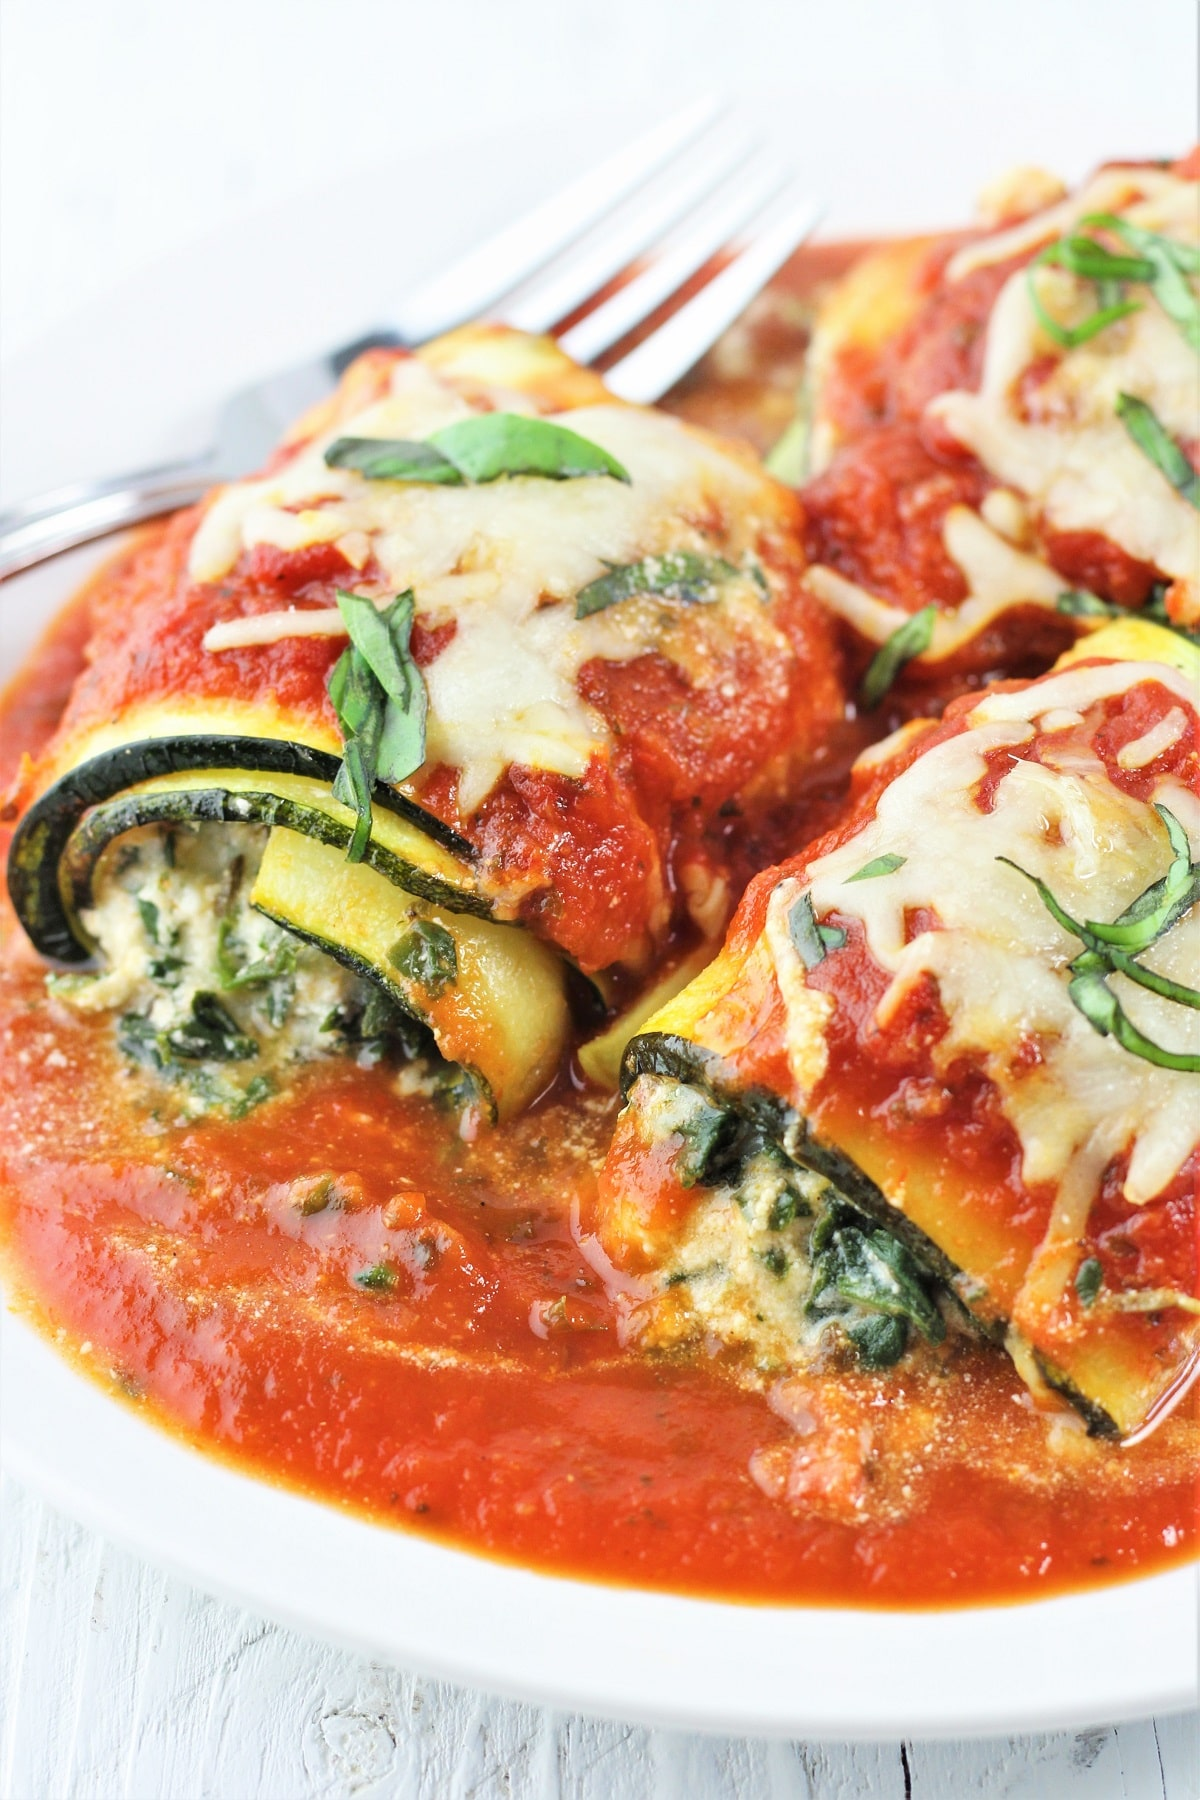 zucchini lasagna roll-ups with spinach and cheese on a white plate with a fork